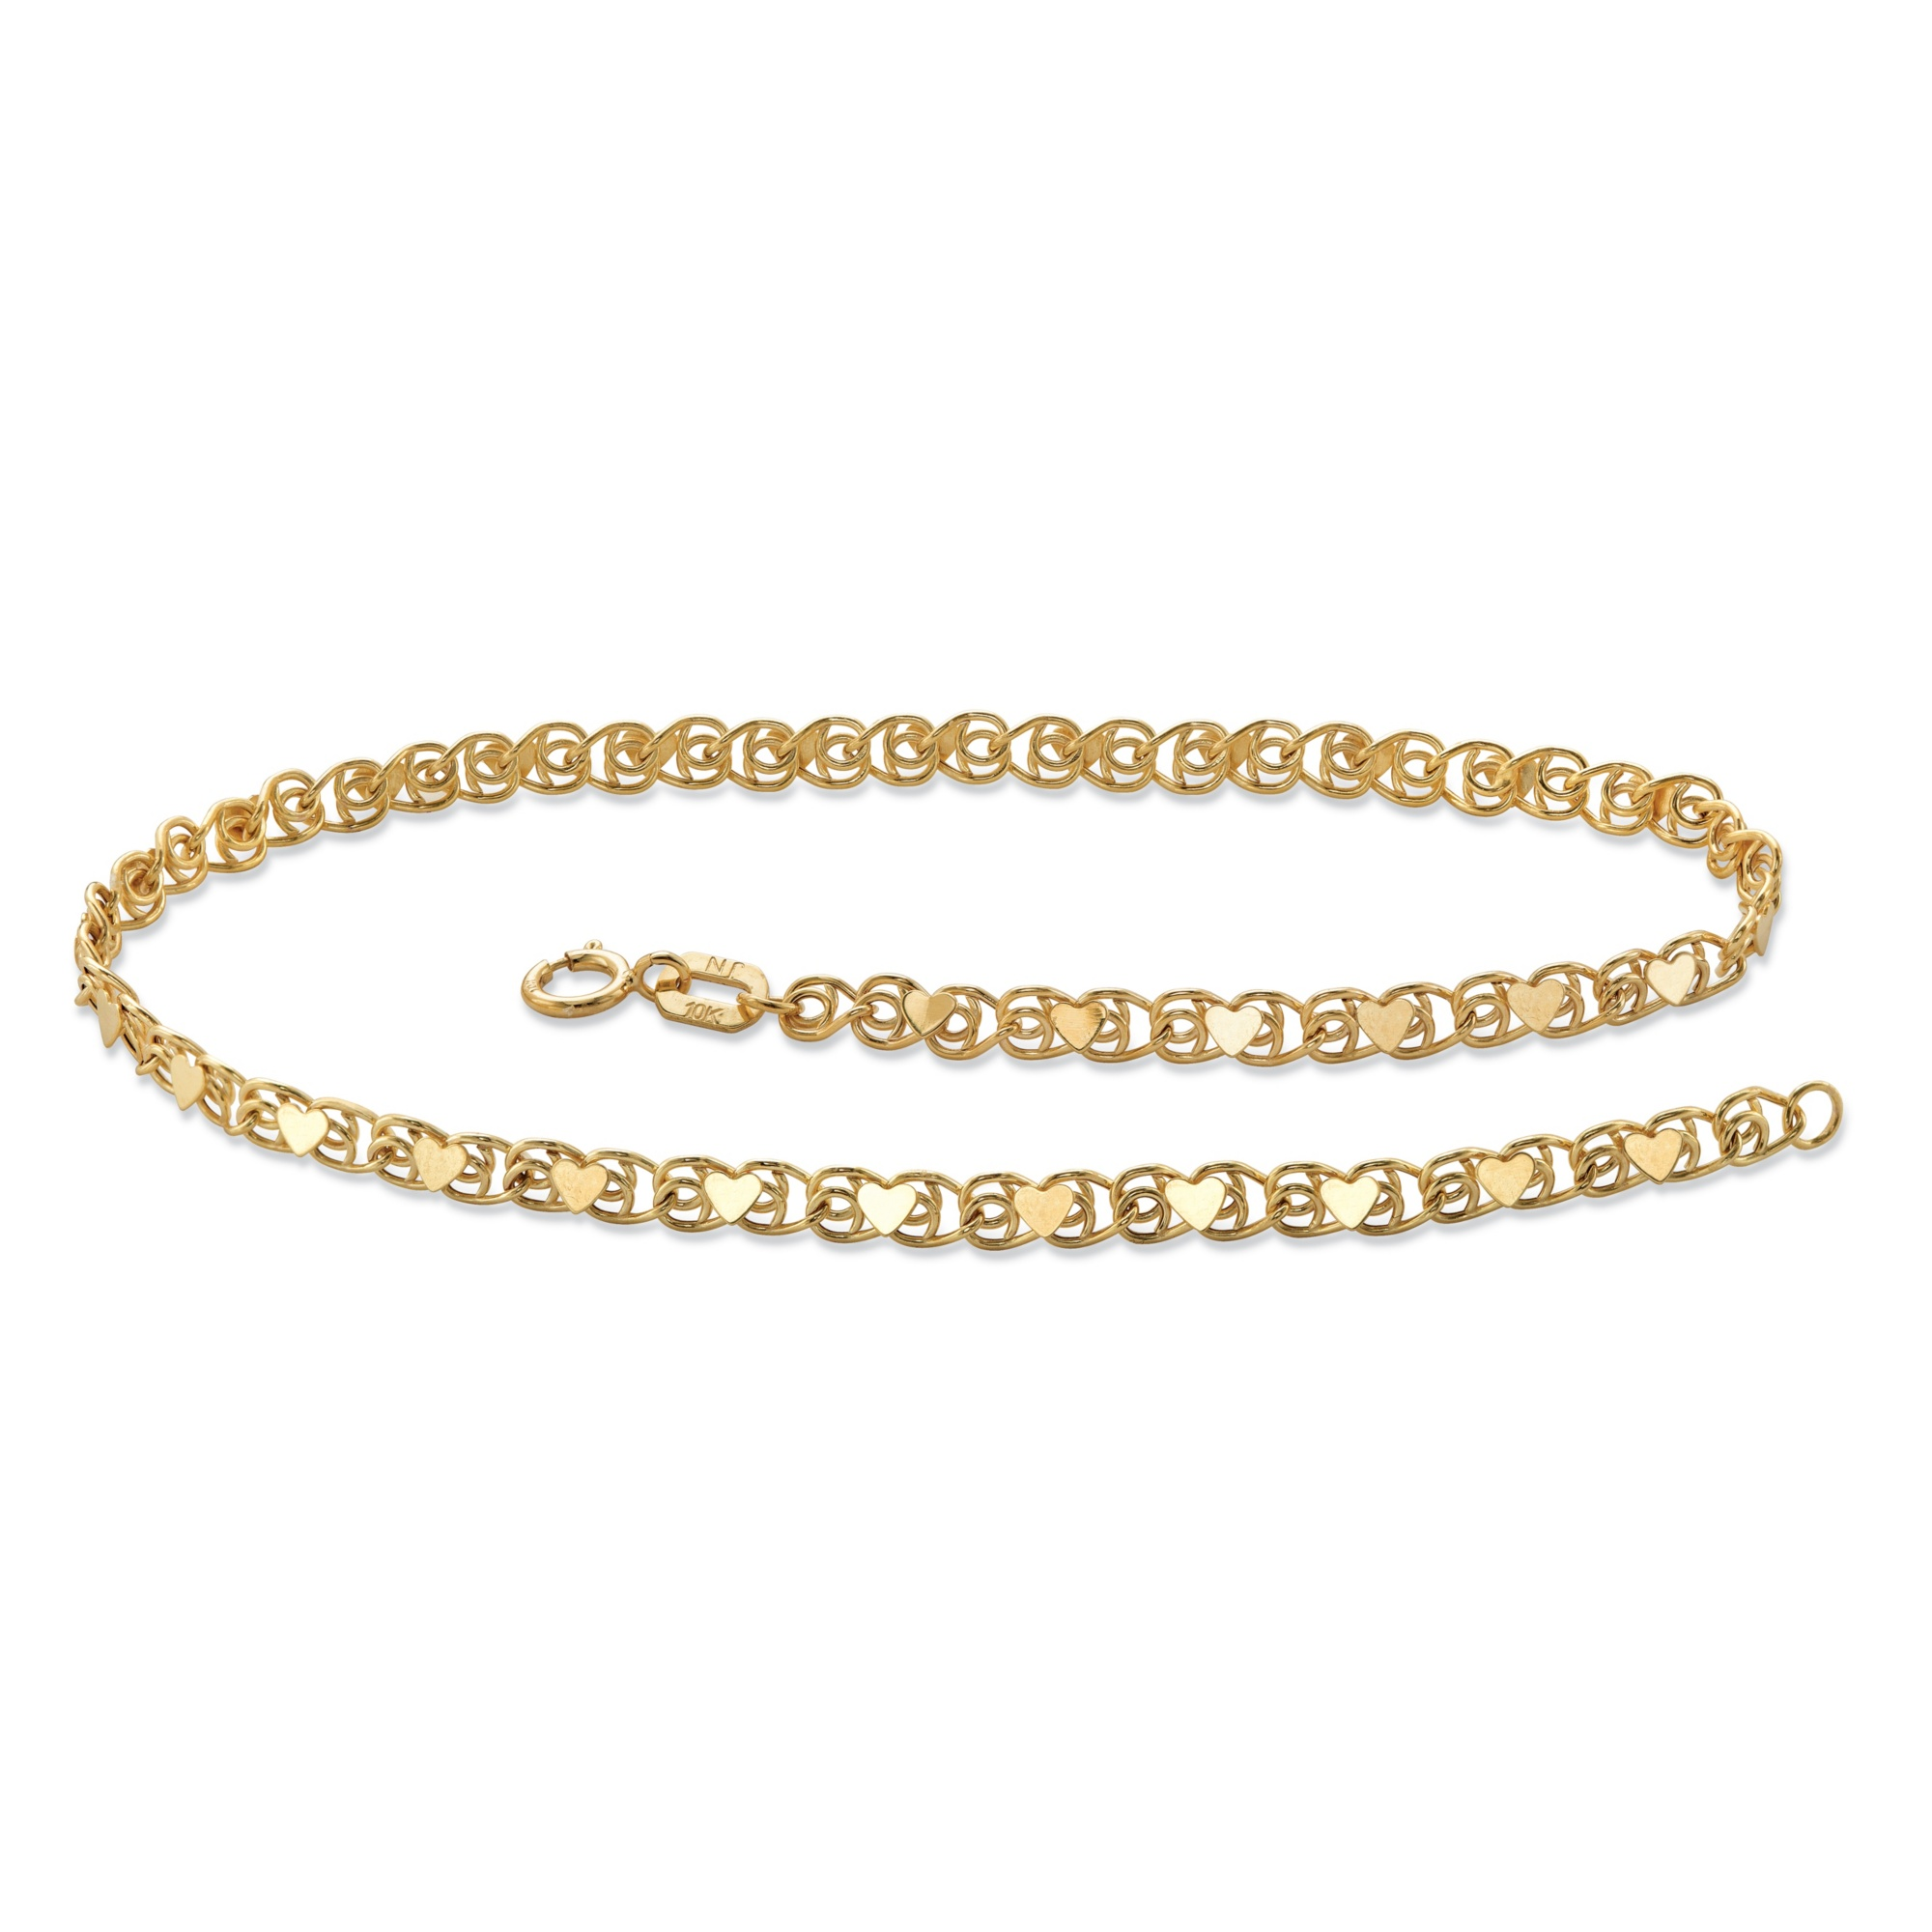 payal traditional women anklets jewelry products img for anklet fashion plated gold ethnic polki indian